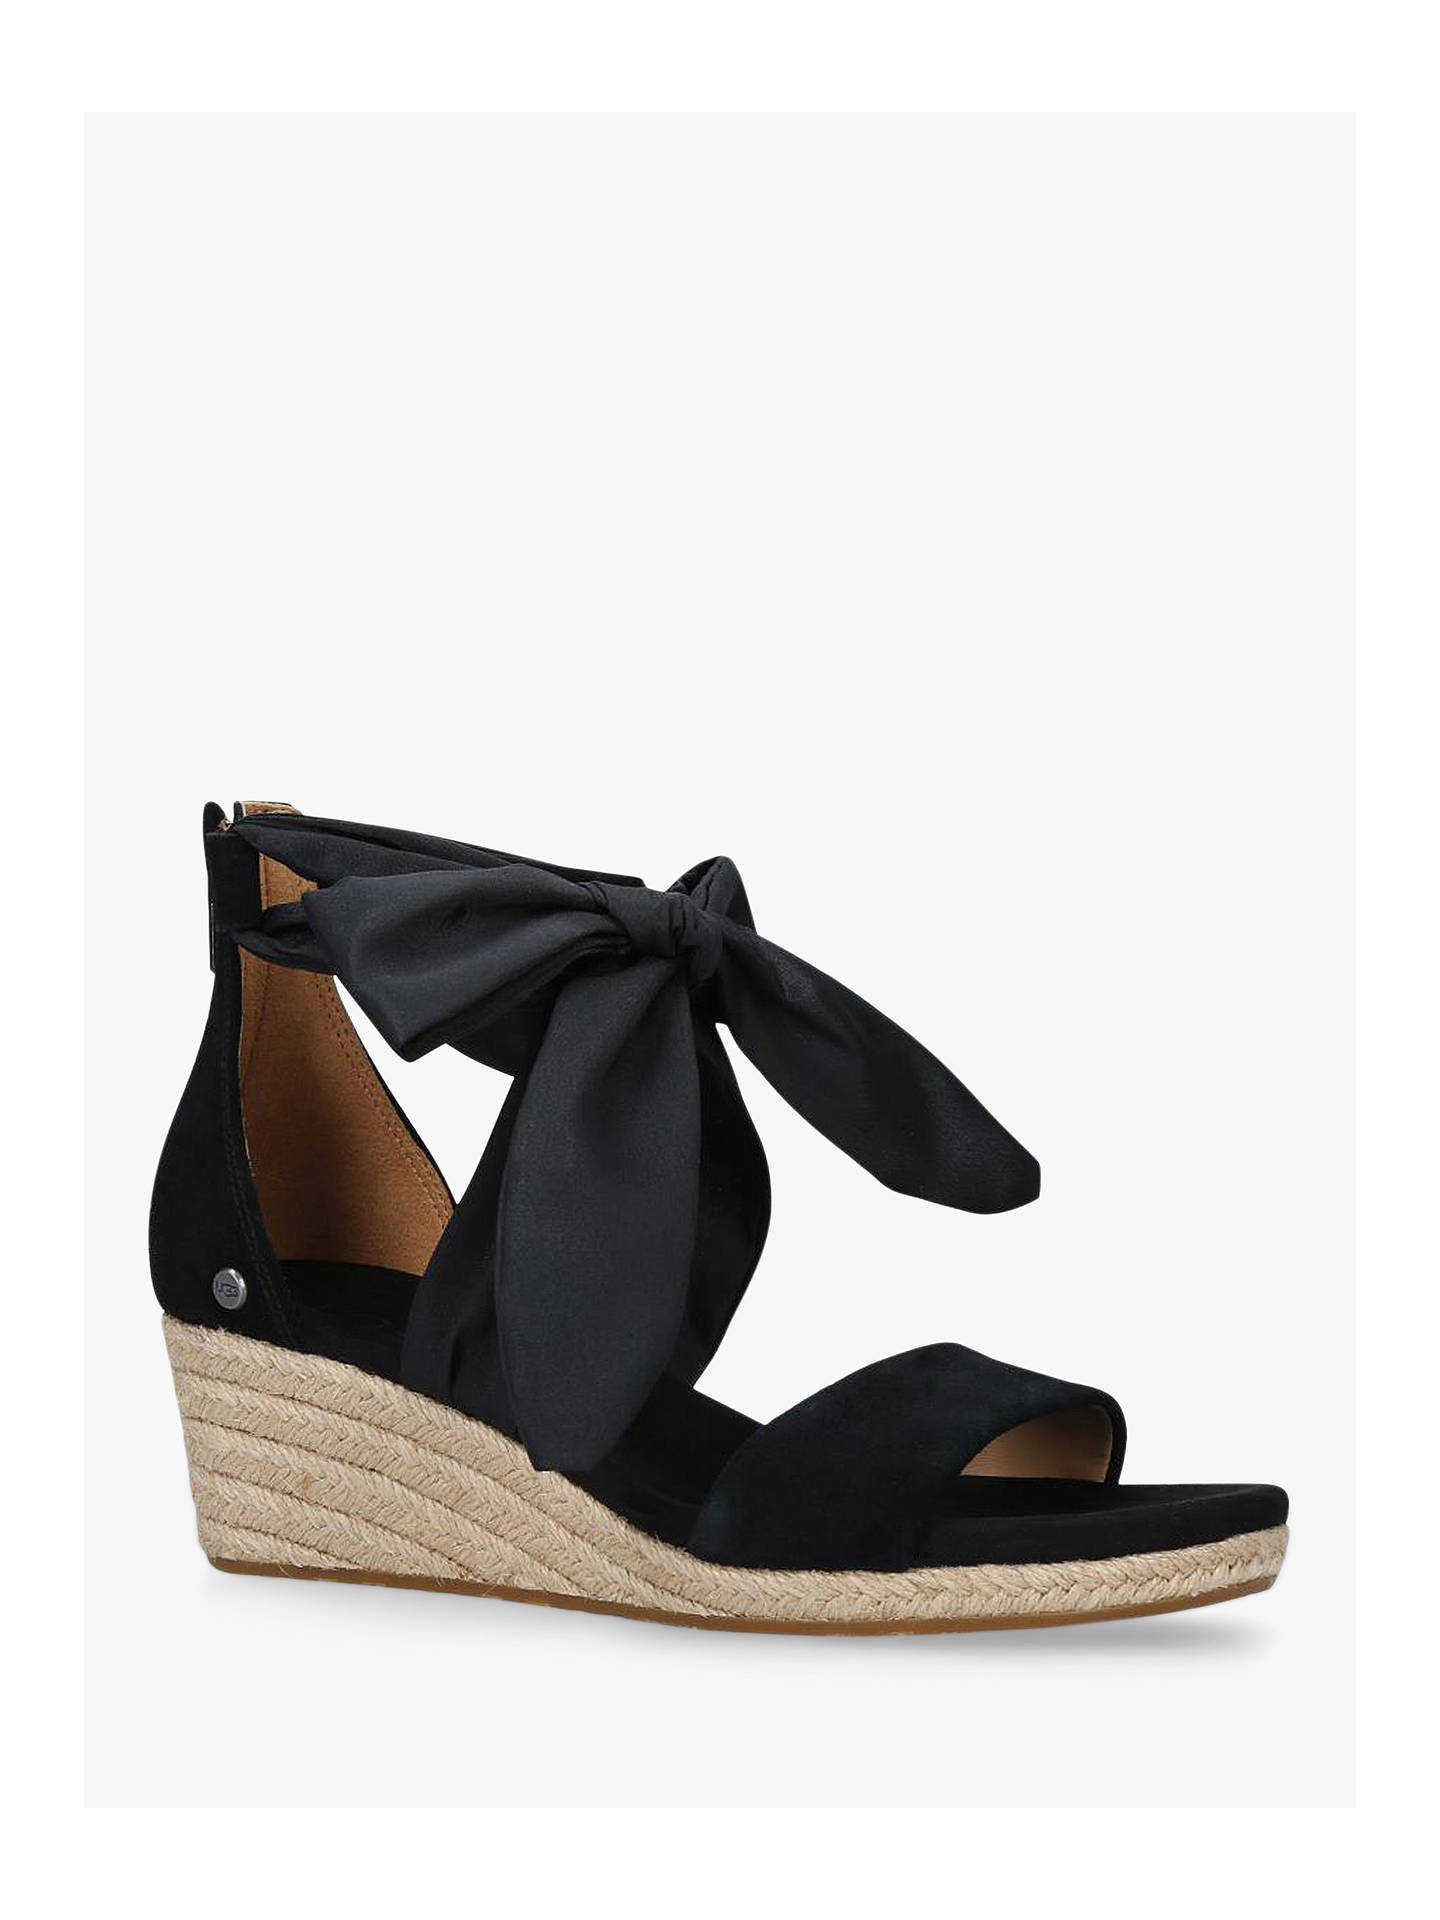 8964f9f8eb5 UGG Trina Suede Tie Detail Wedge Heel Sandals at John Lewis & Partners